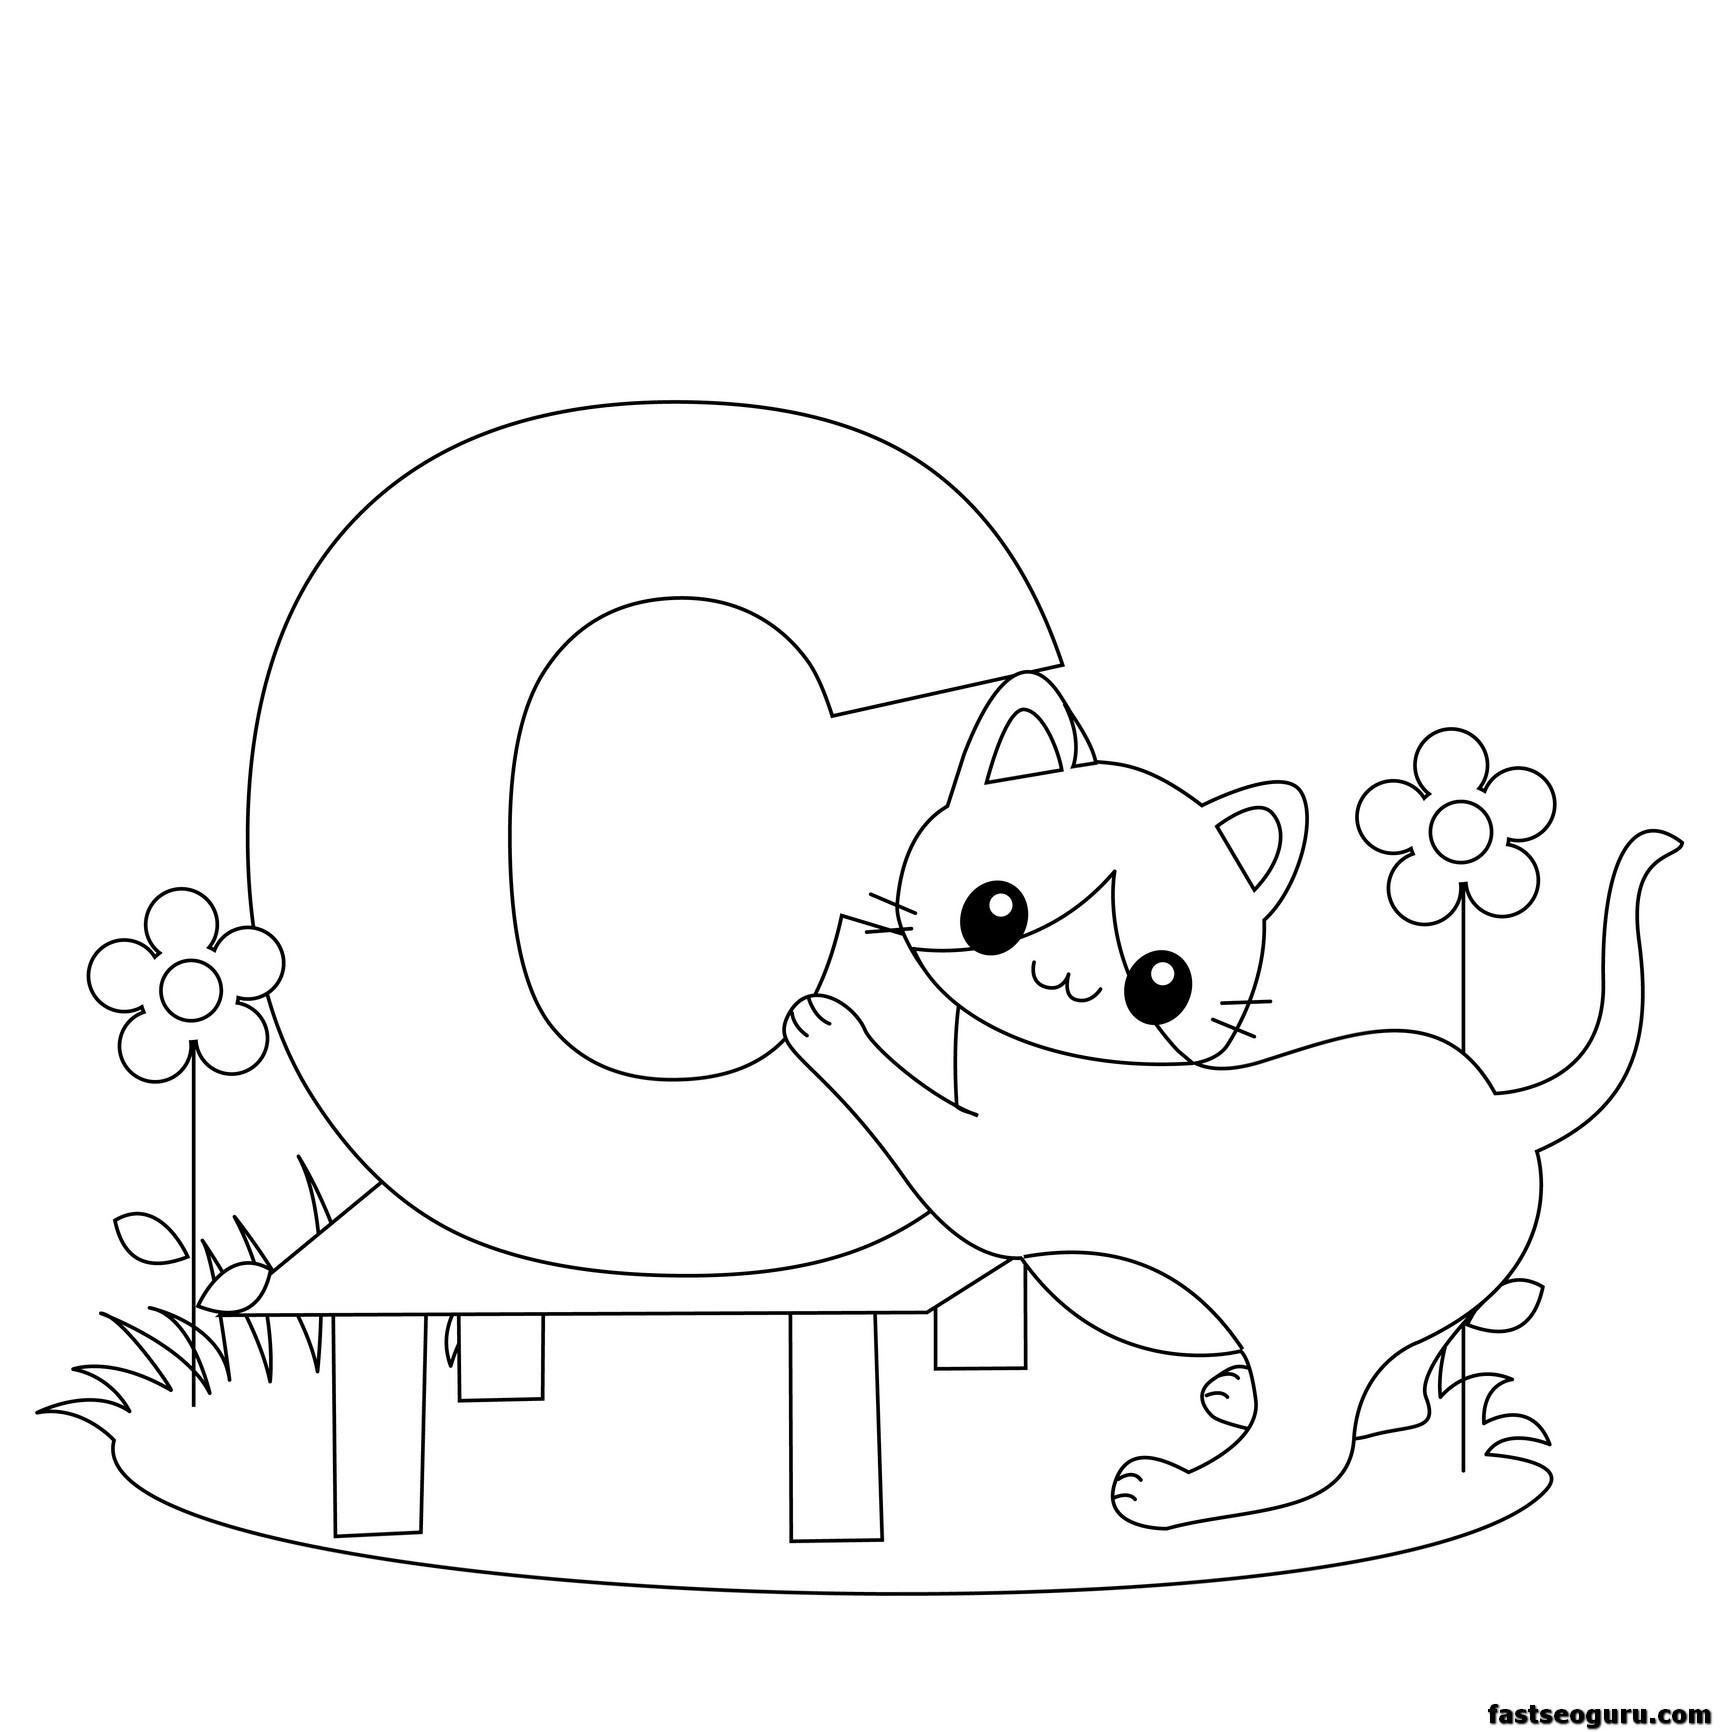 Printable Animal Alphabet Worksheets Letter C For Cat